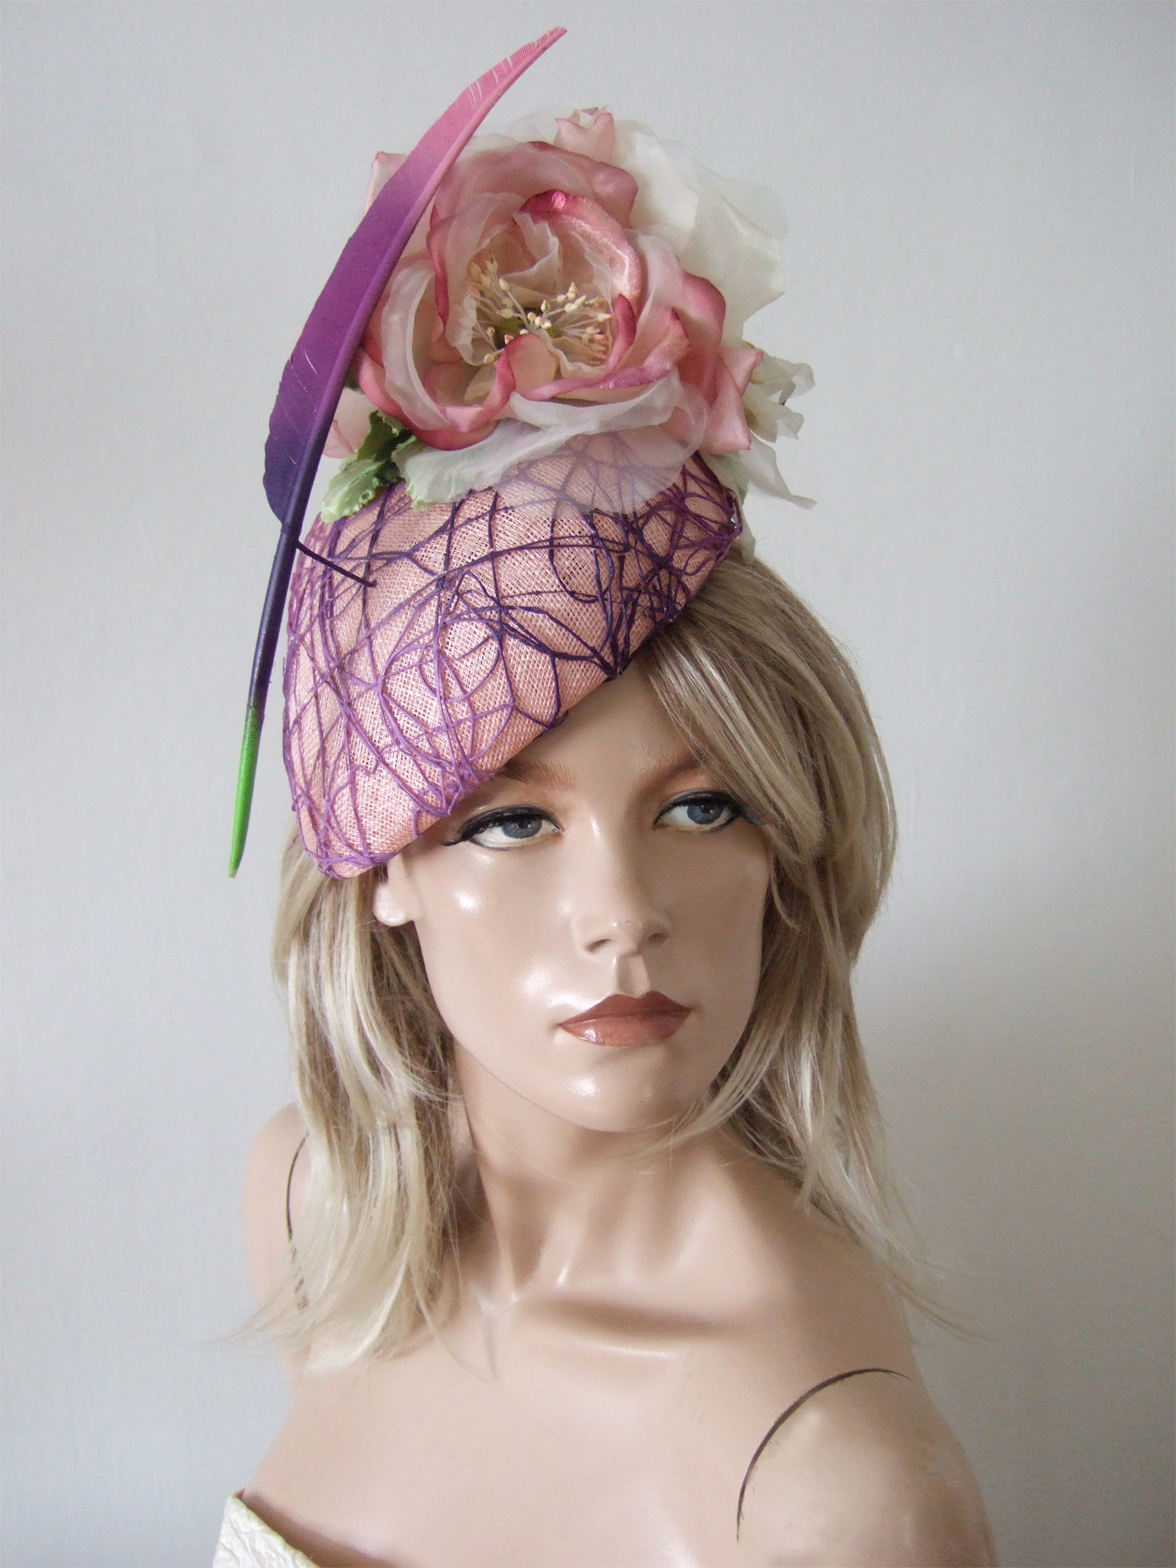 Designer Hats for Hire near London. Royal Ascot Hat Rental 2021. Hire Hats for Wedding Guests UK. Best Royal Ascot Hats 2021. Designer Hats for Hire 2020. Floral Fascinators. Hats to wear with a Pink dress. Pink Mother of the Bride Hats. Wedding Hats for Hire UK 2020. Amazing Hats for the Races 2020. Mother of the Bride Hat Hire 2020.